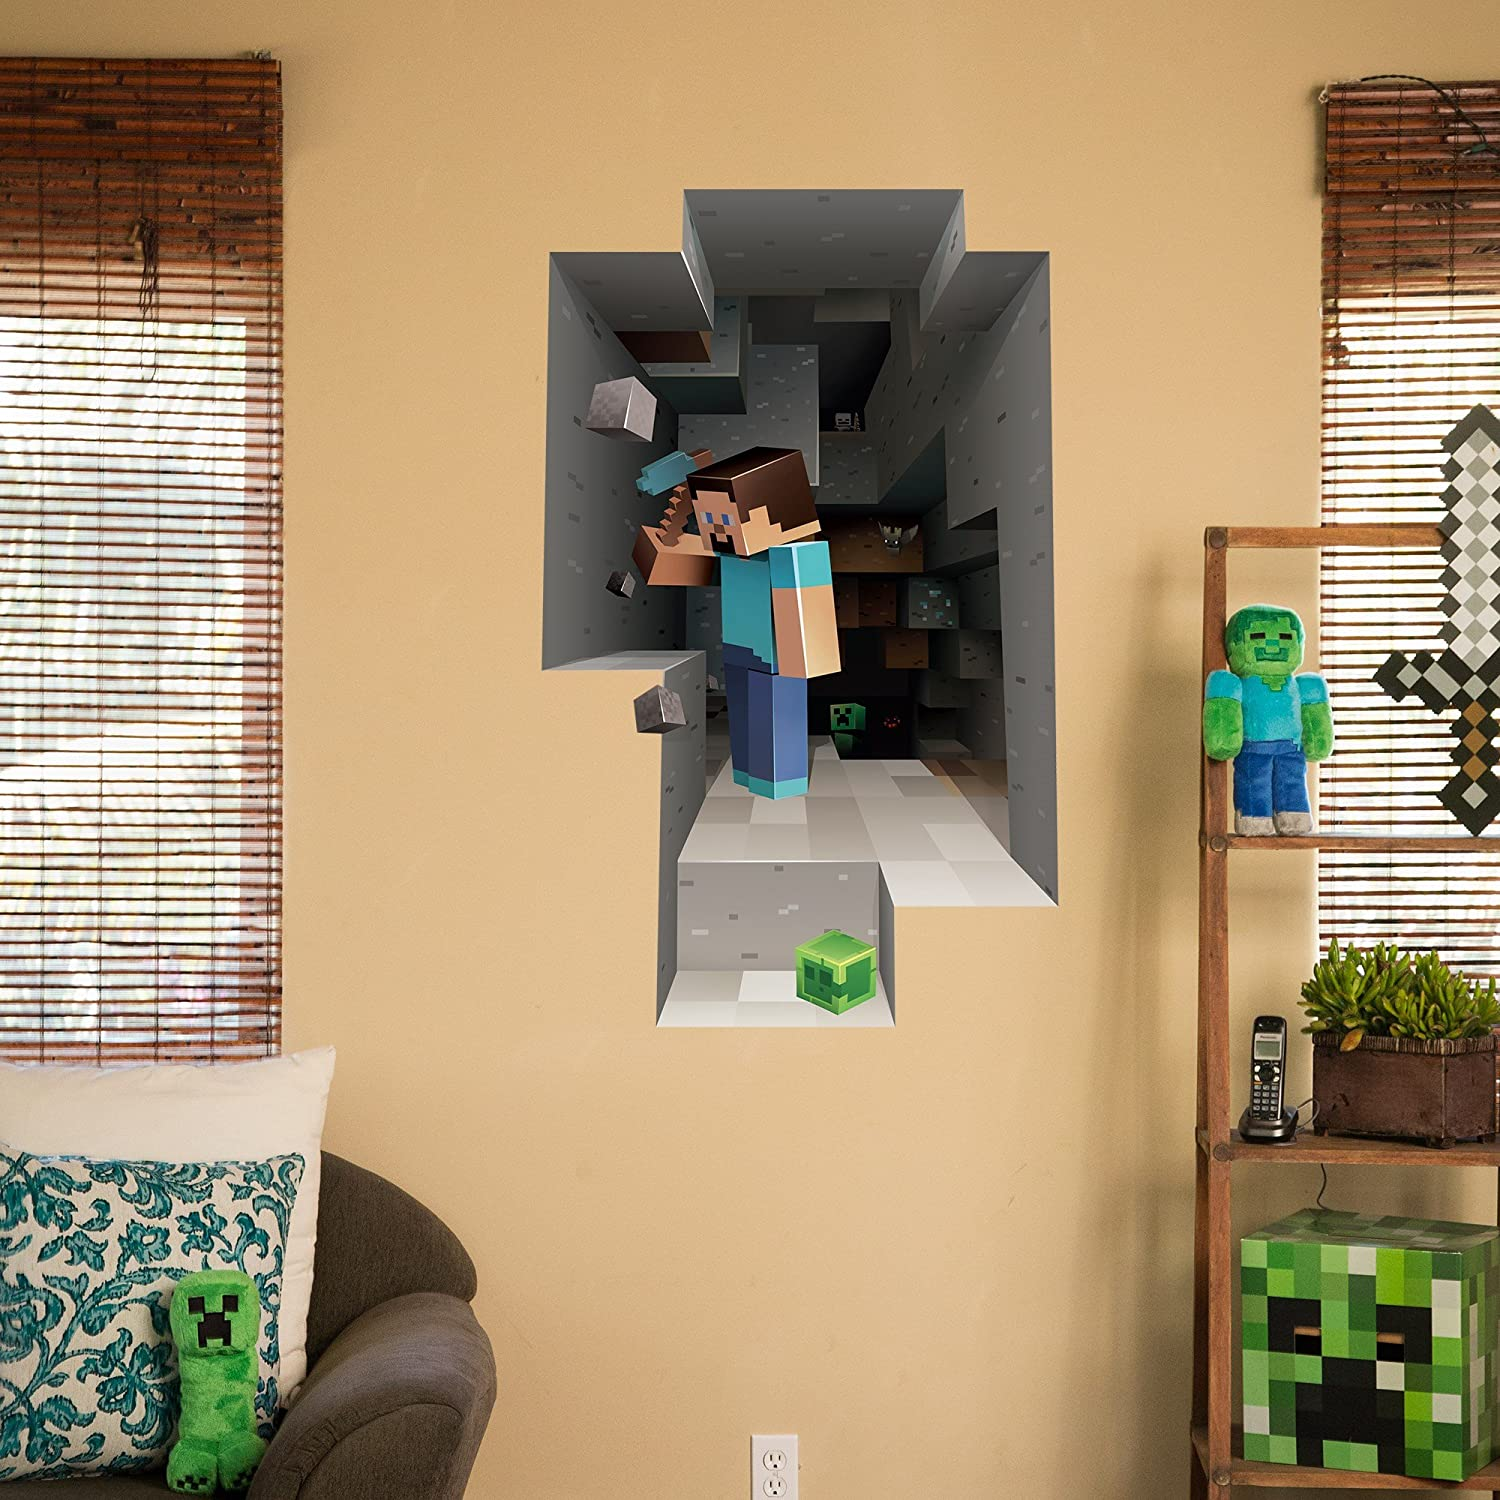 Amazon.com: Minecraft Digging Steve Wall Cling Decal: Home & Kitchen